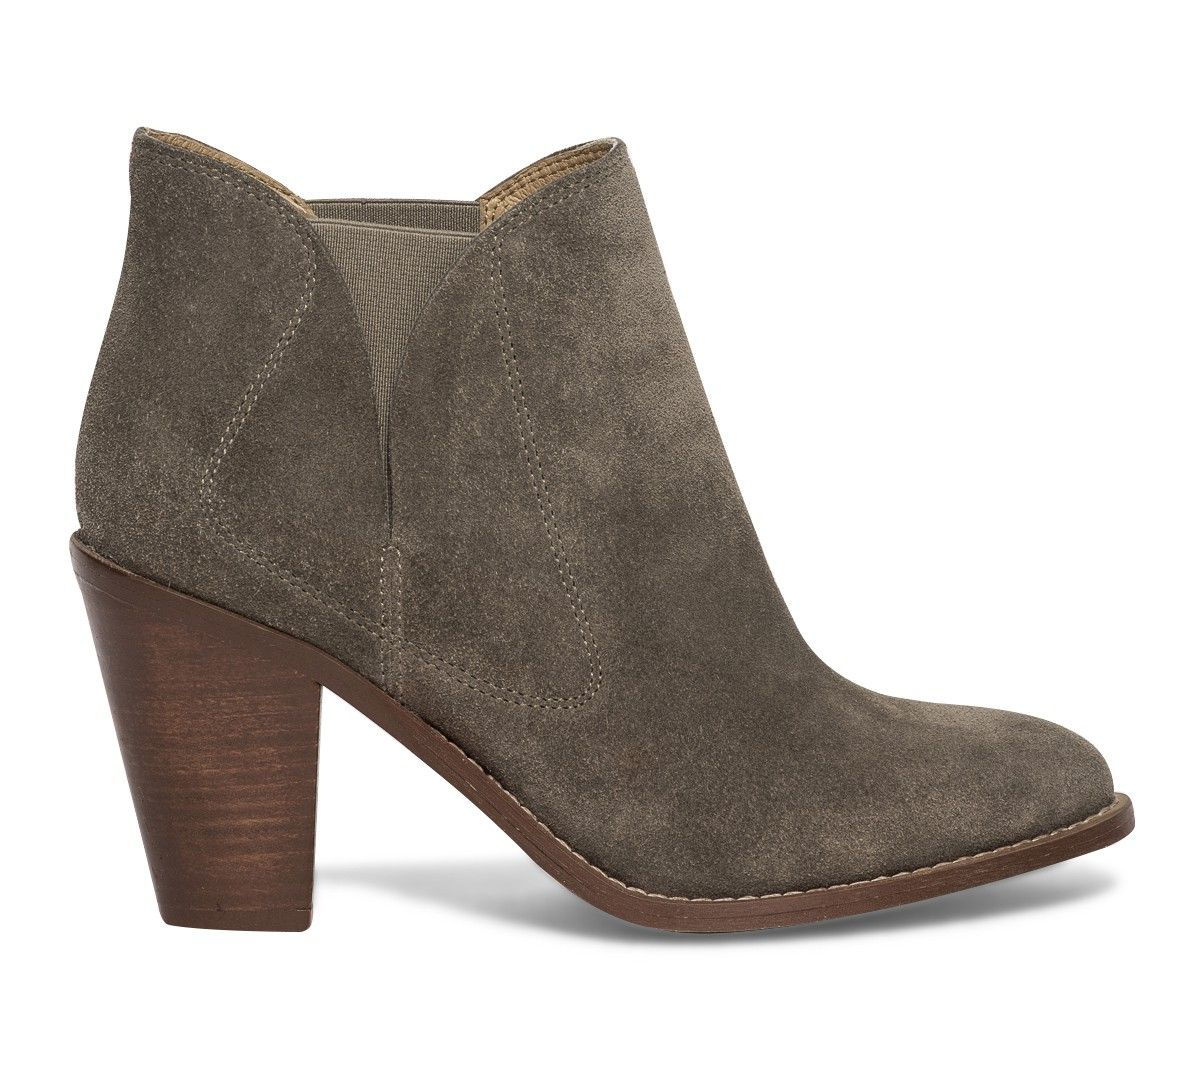 boots croûte de cuir taupe - boots / bottines - chaussures femme